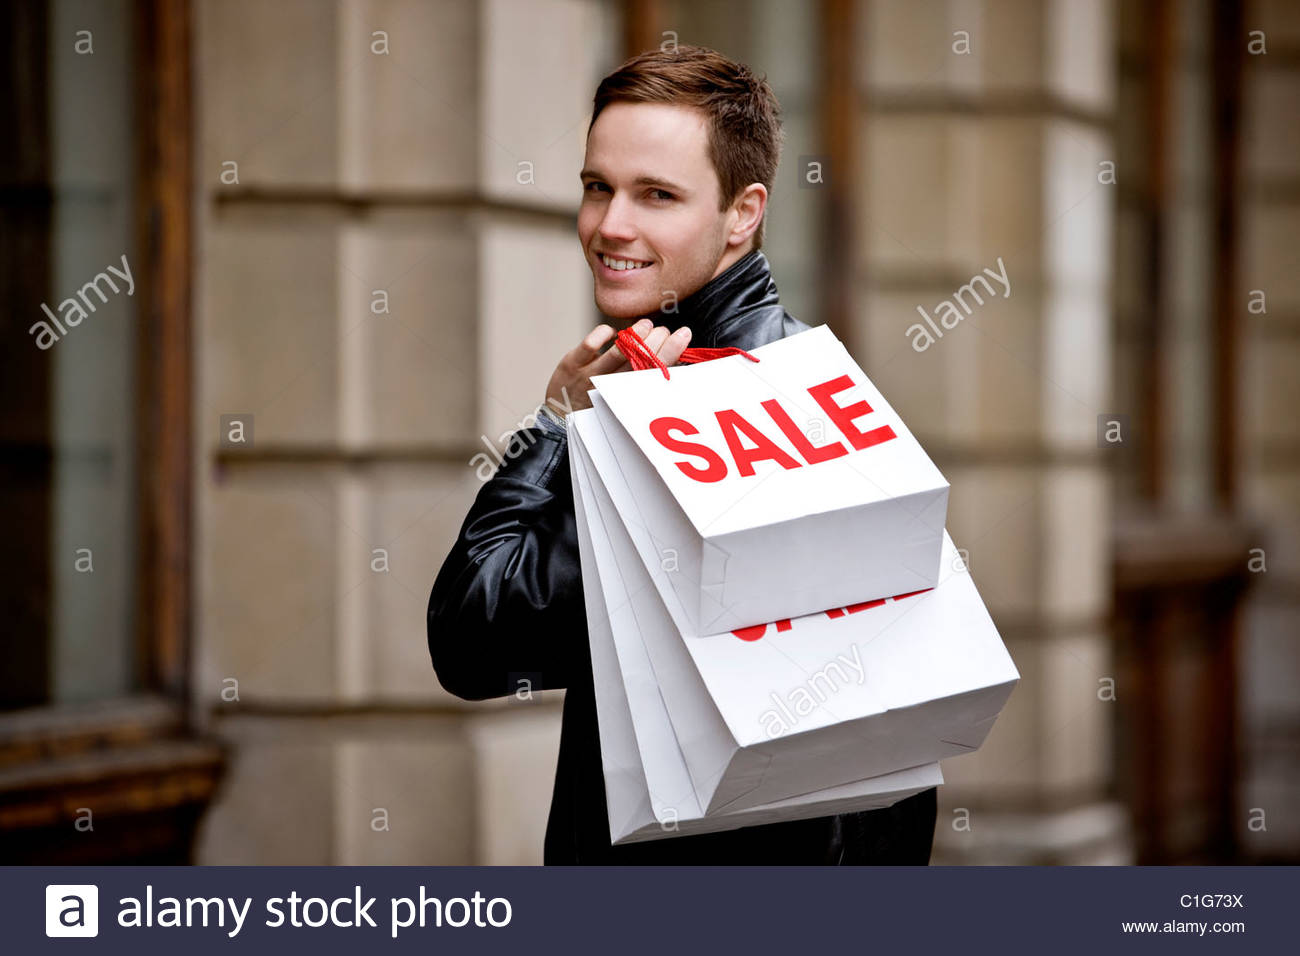 A young man holding carrier bags - Stock Image